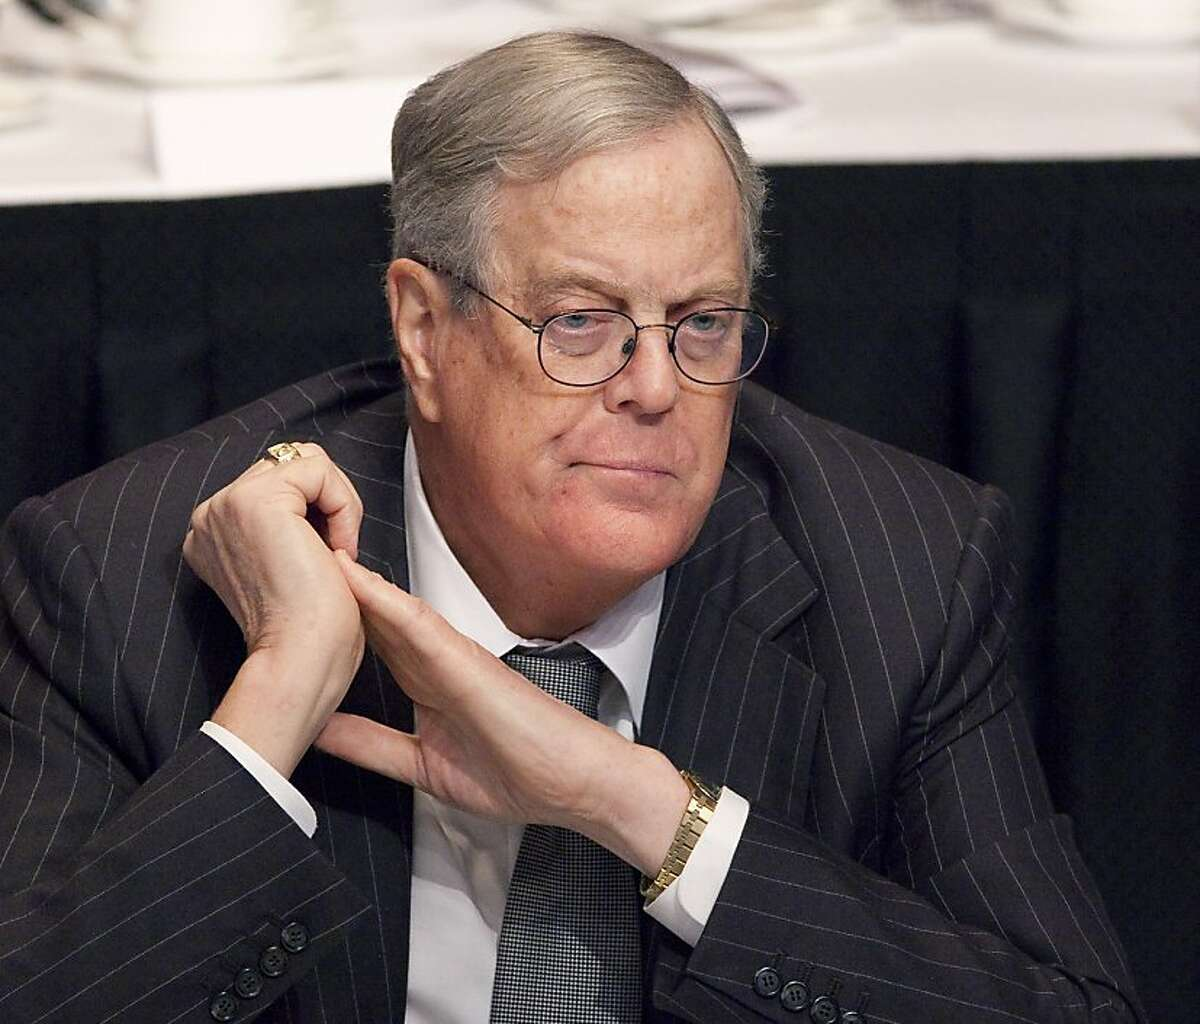 David Koch, executive vice president of Koch Industries, attends a meeting of the Economic Club of New York, Monday, April 11, 2011. (AP Photo/Mark Lennihan)